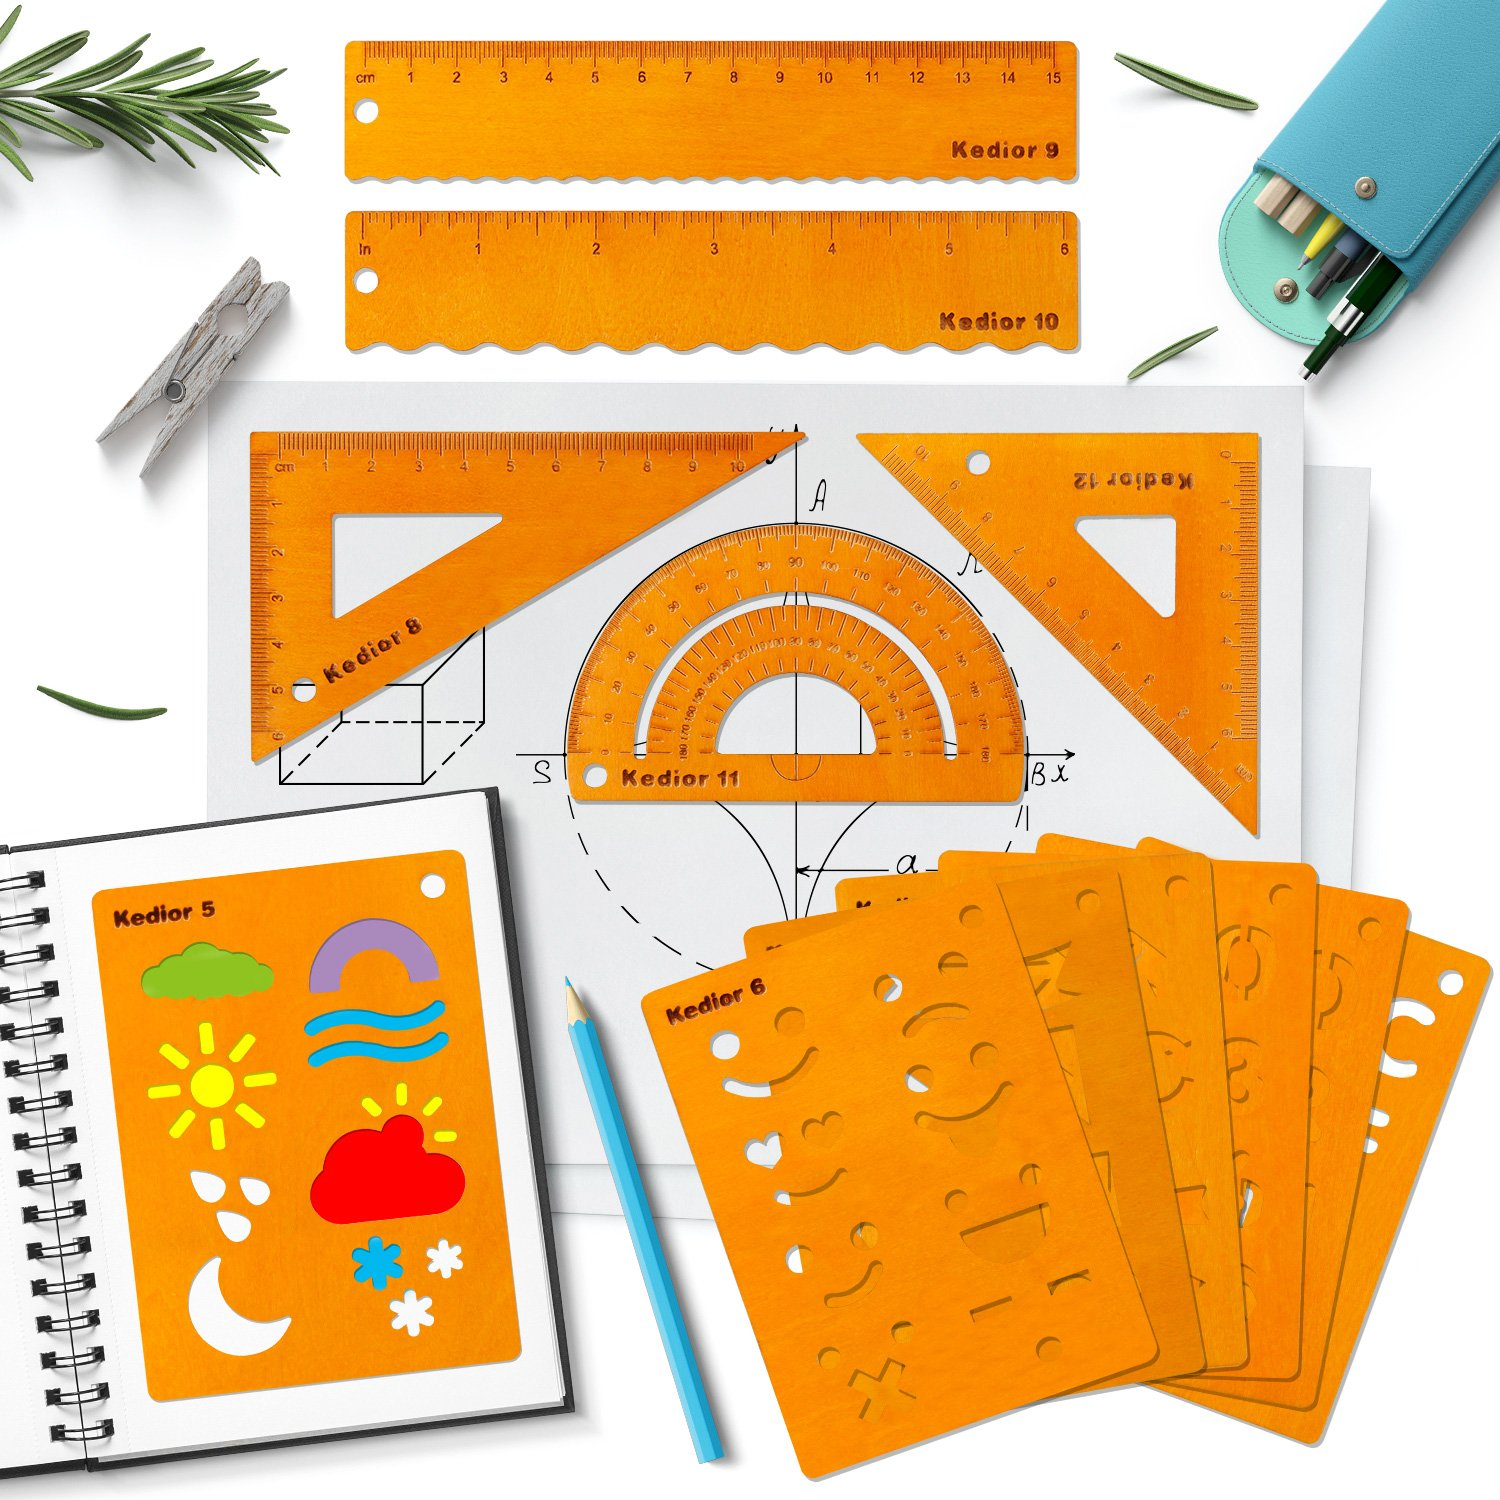 Bullet Journal Accessories for DIY Drawing on Scrapbook,12 Pieces Wooden Planner Stencil and Math Geometry Tool Wooden Ruler Sets with Different Patterns for Journal,Notebook,Diary,Art Craft Projects,Schedule Book DIY Drawing Templates KEDIOR